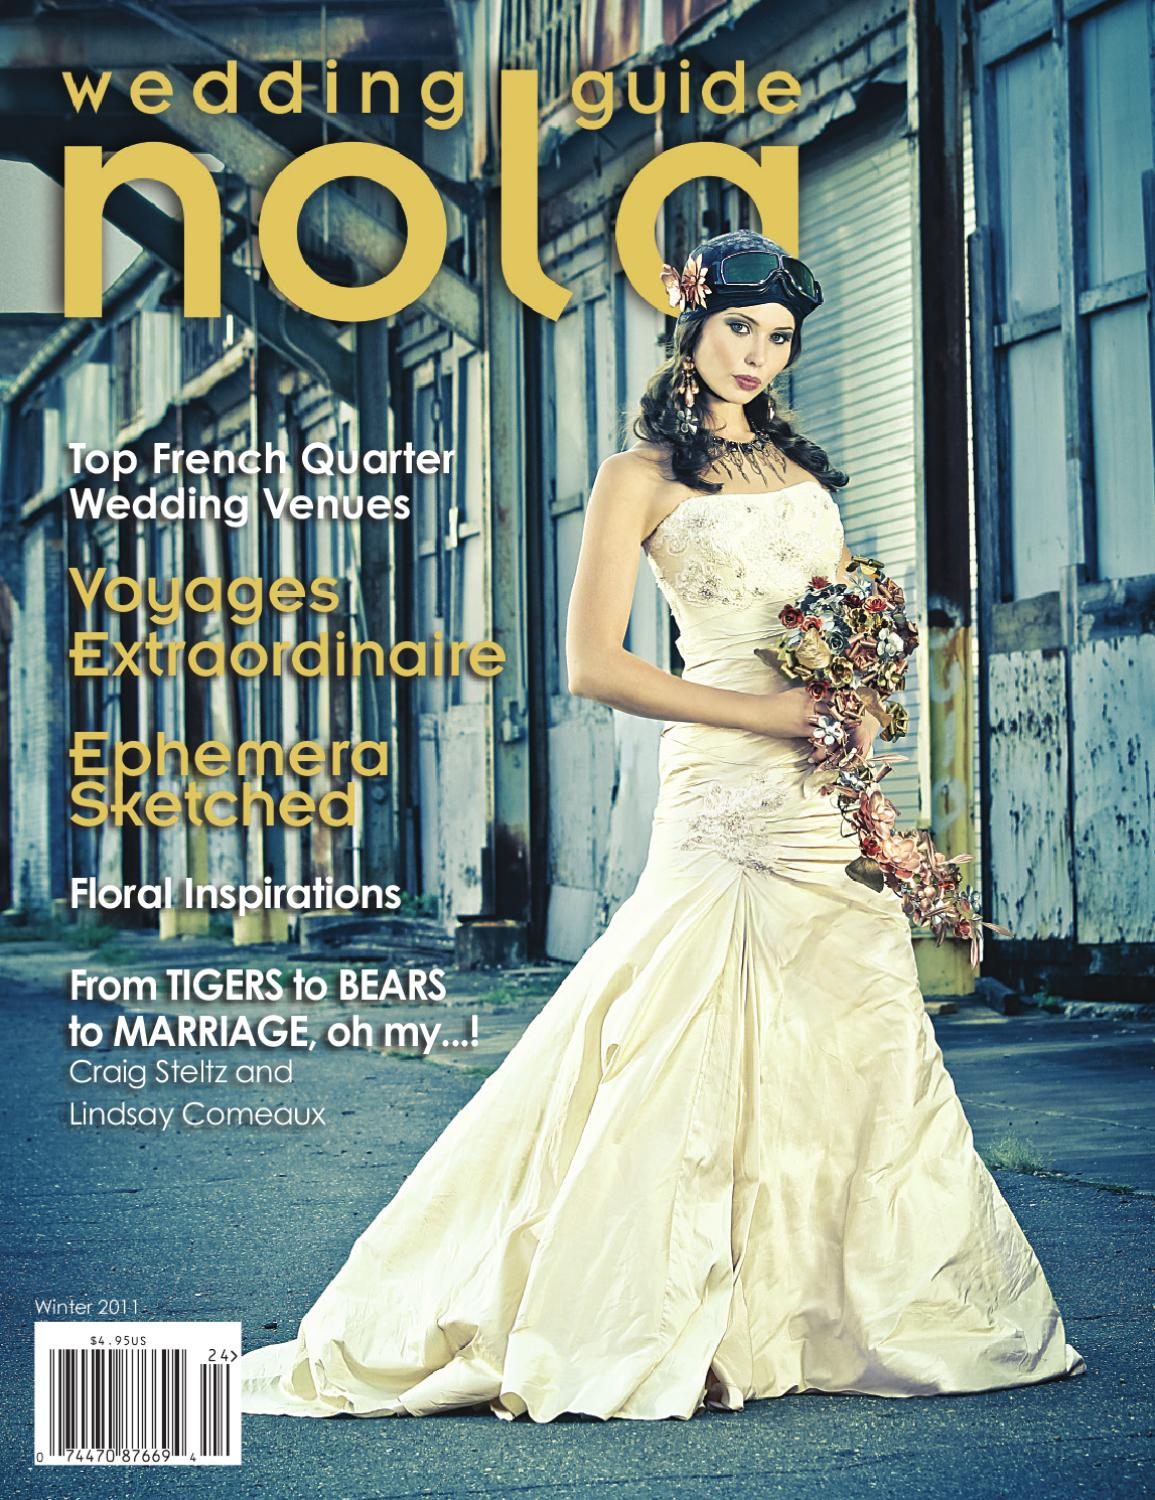 NOLA Wedding Guide Winter Issue by NOLA Wedding Guide - issuu